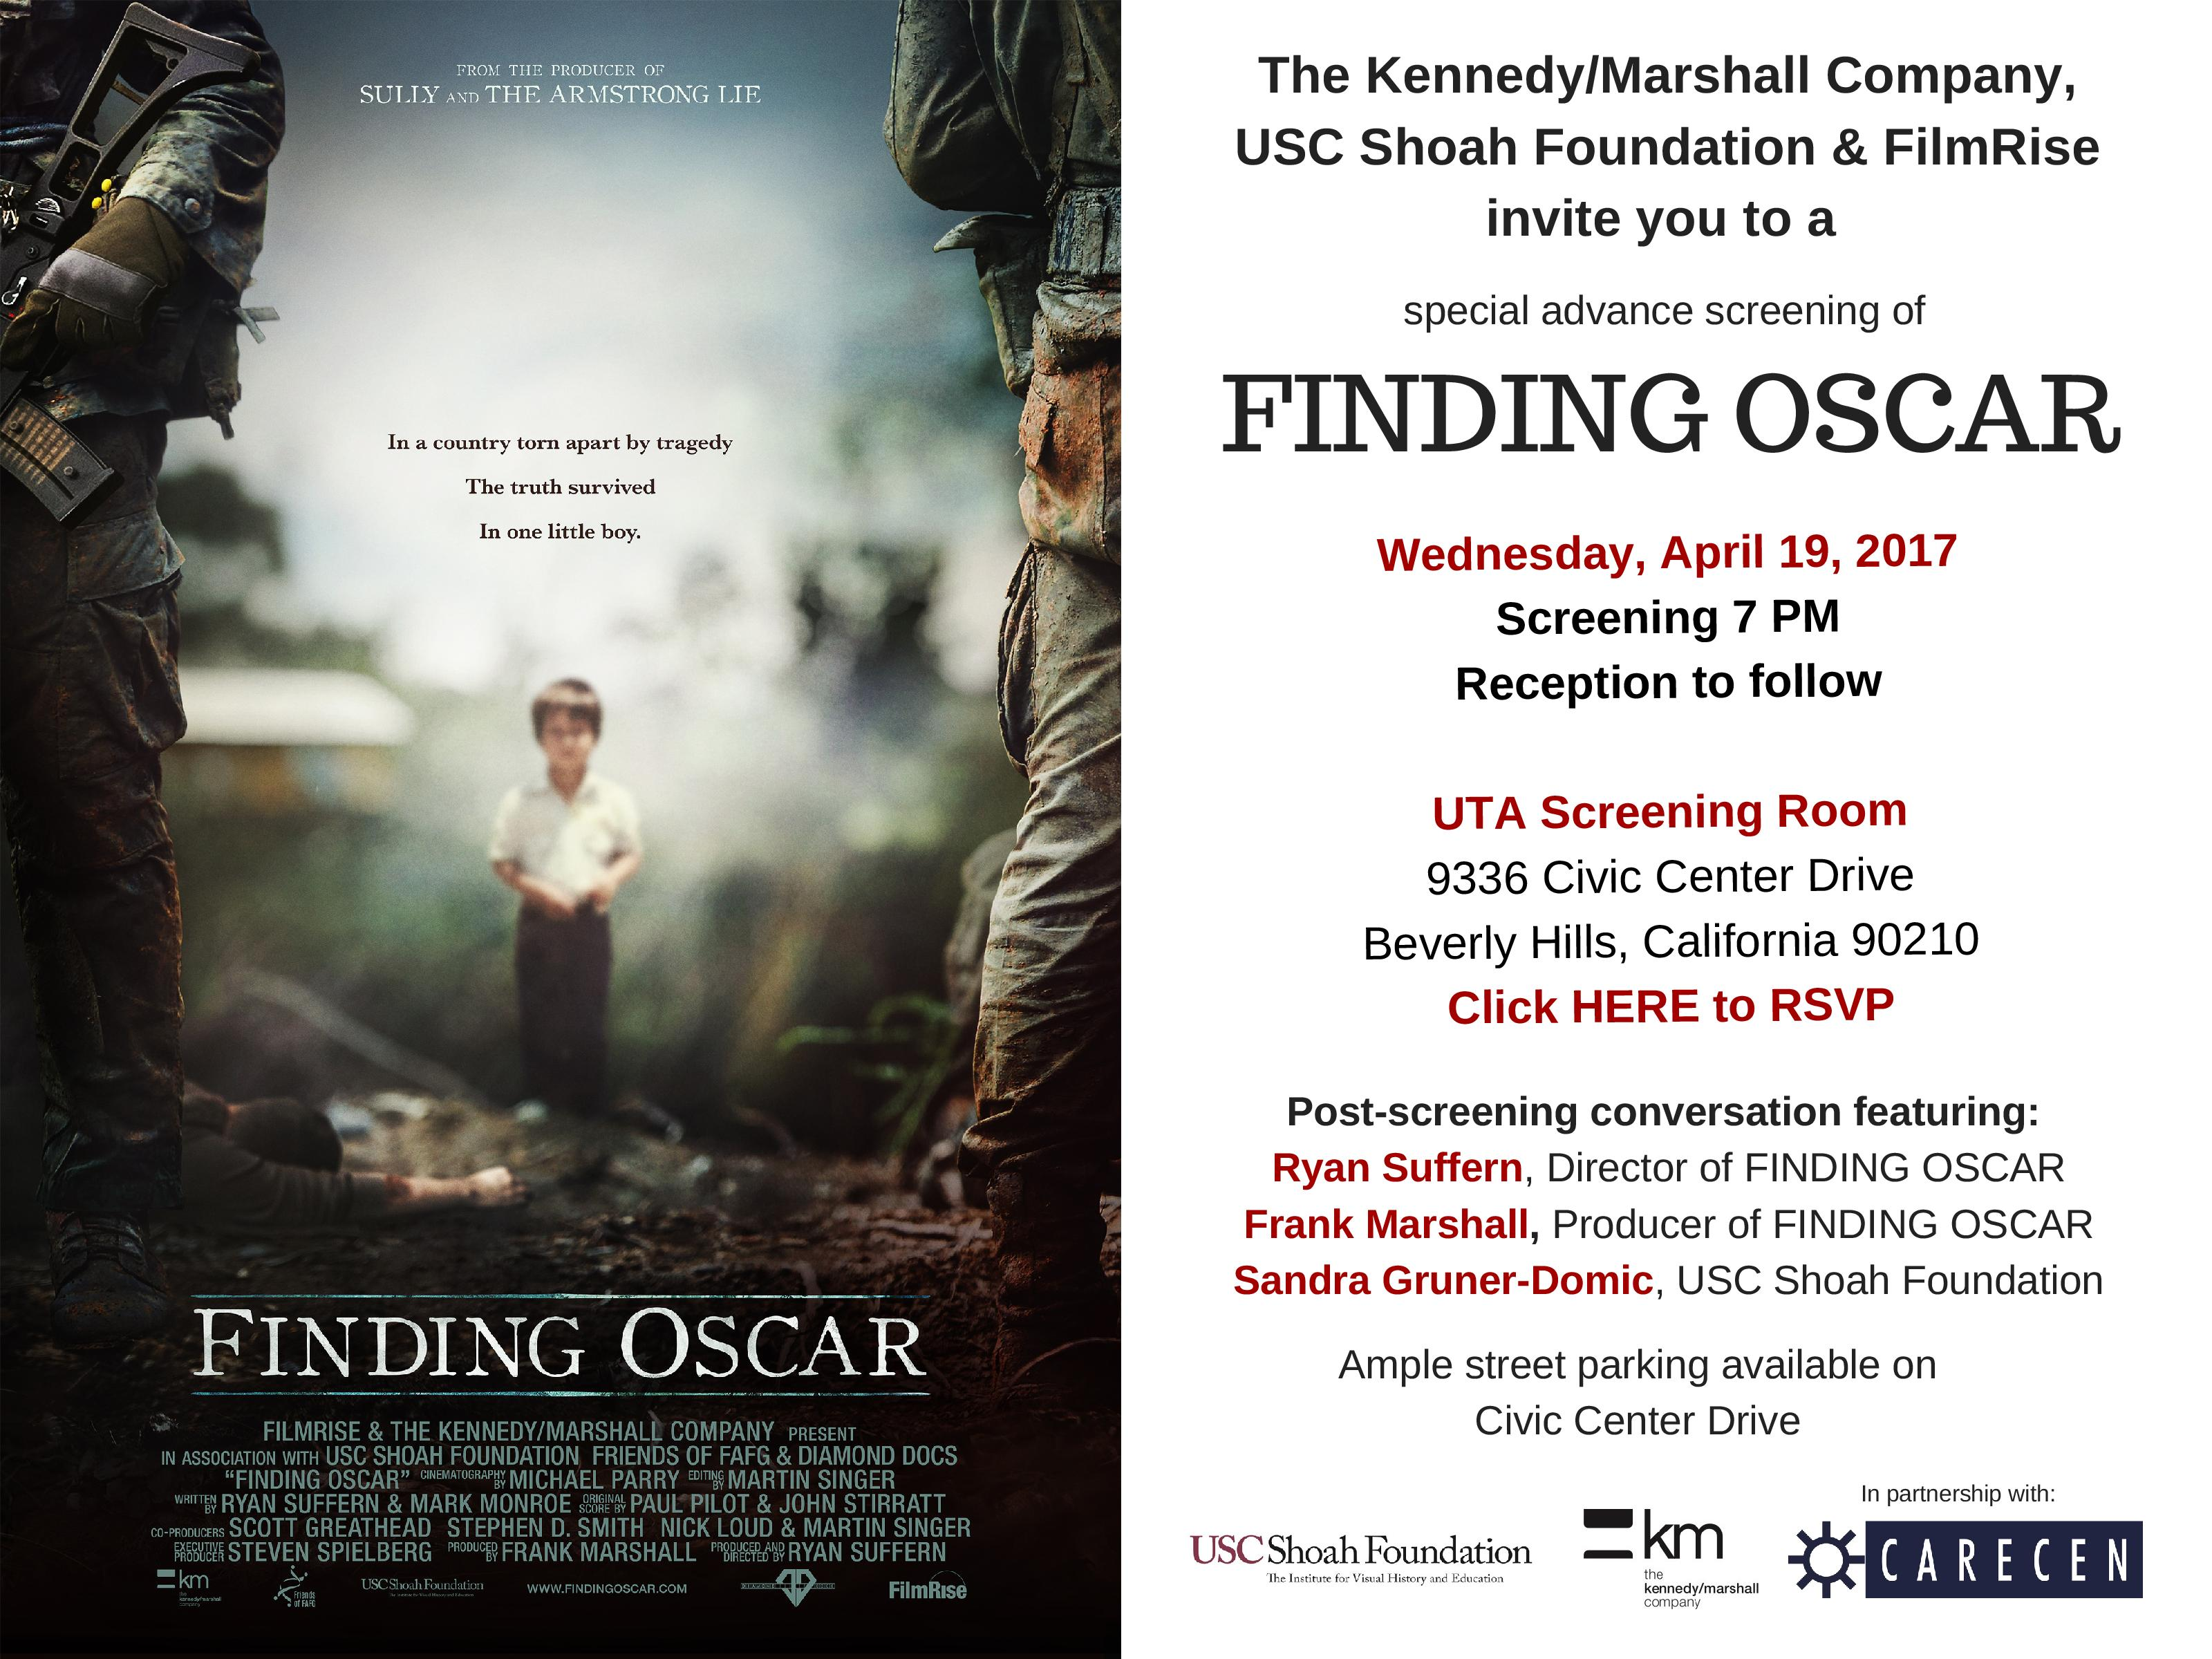 Finding Oscar Film Screening DTLA Central American Resource